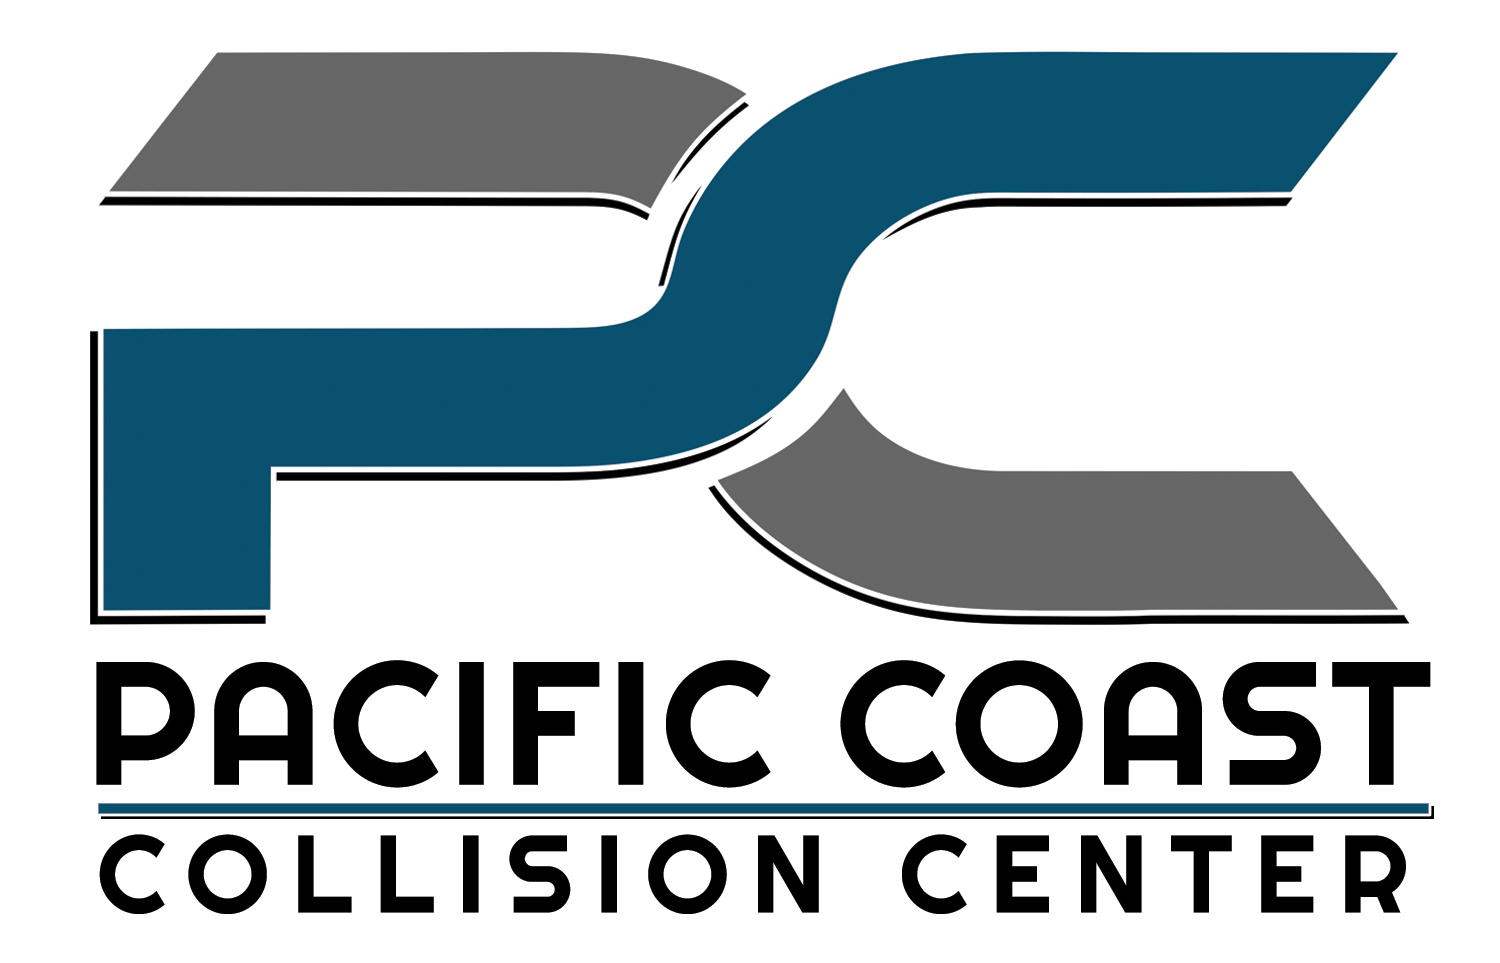 Pacific Coast Collision Center